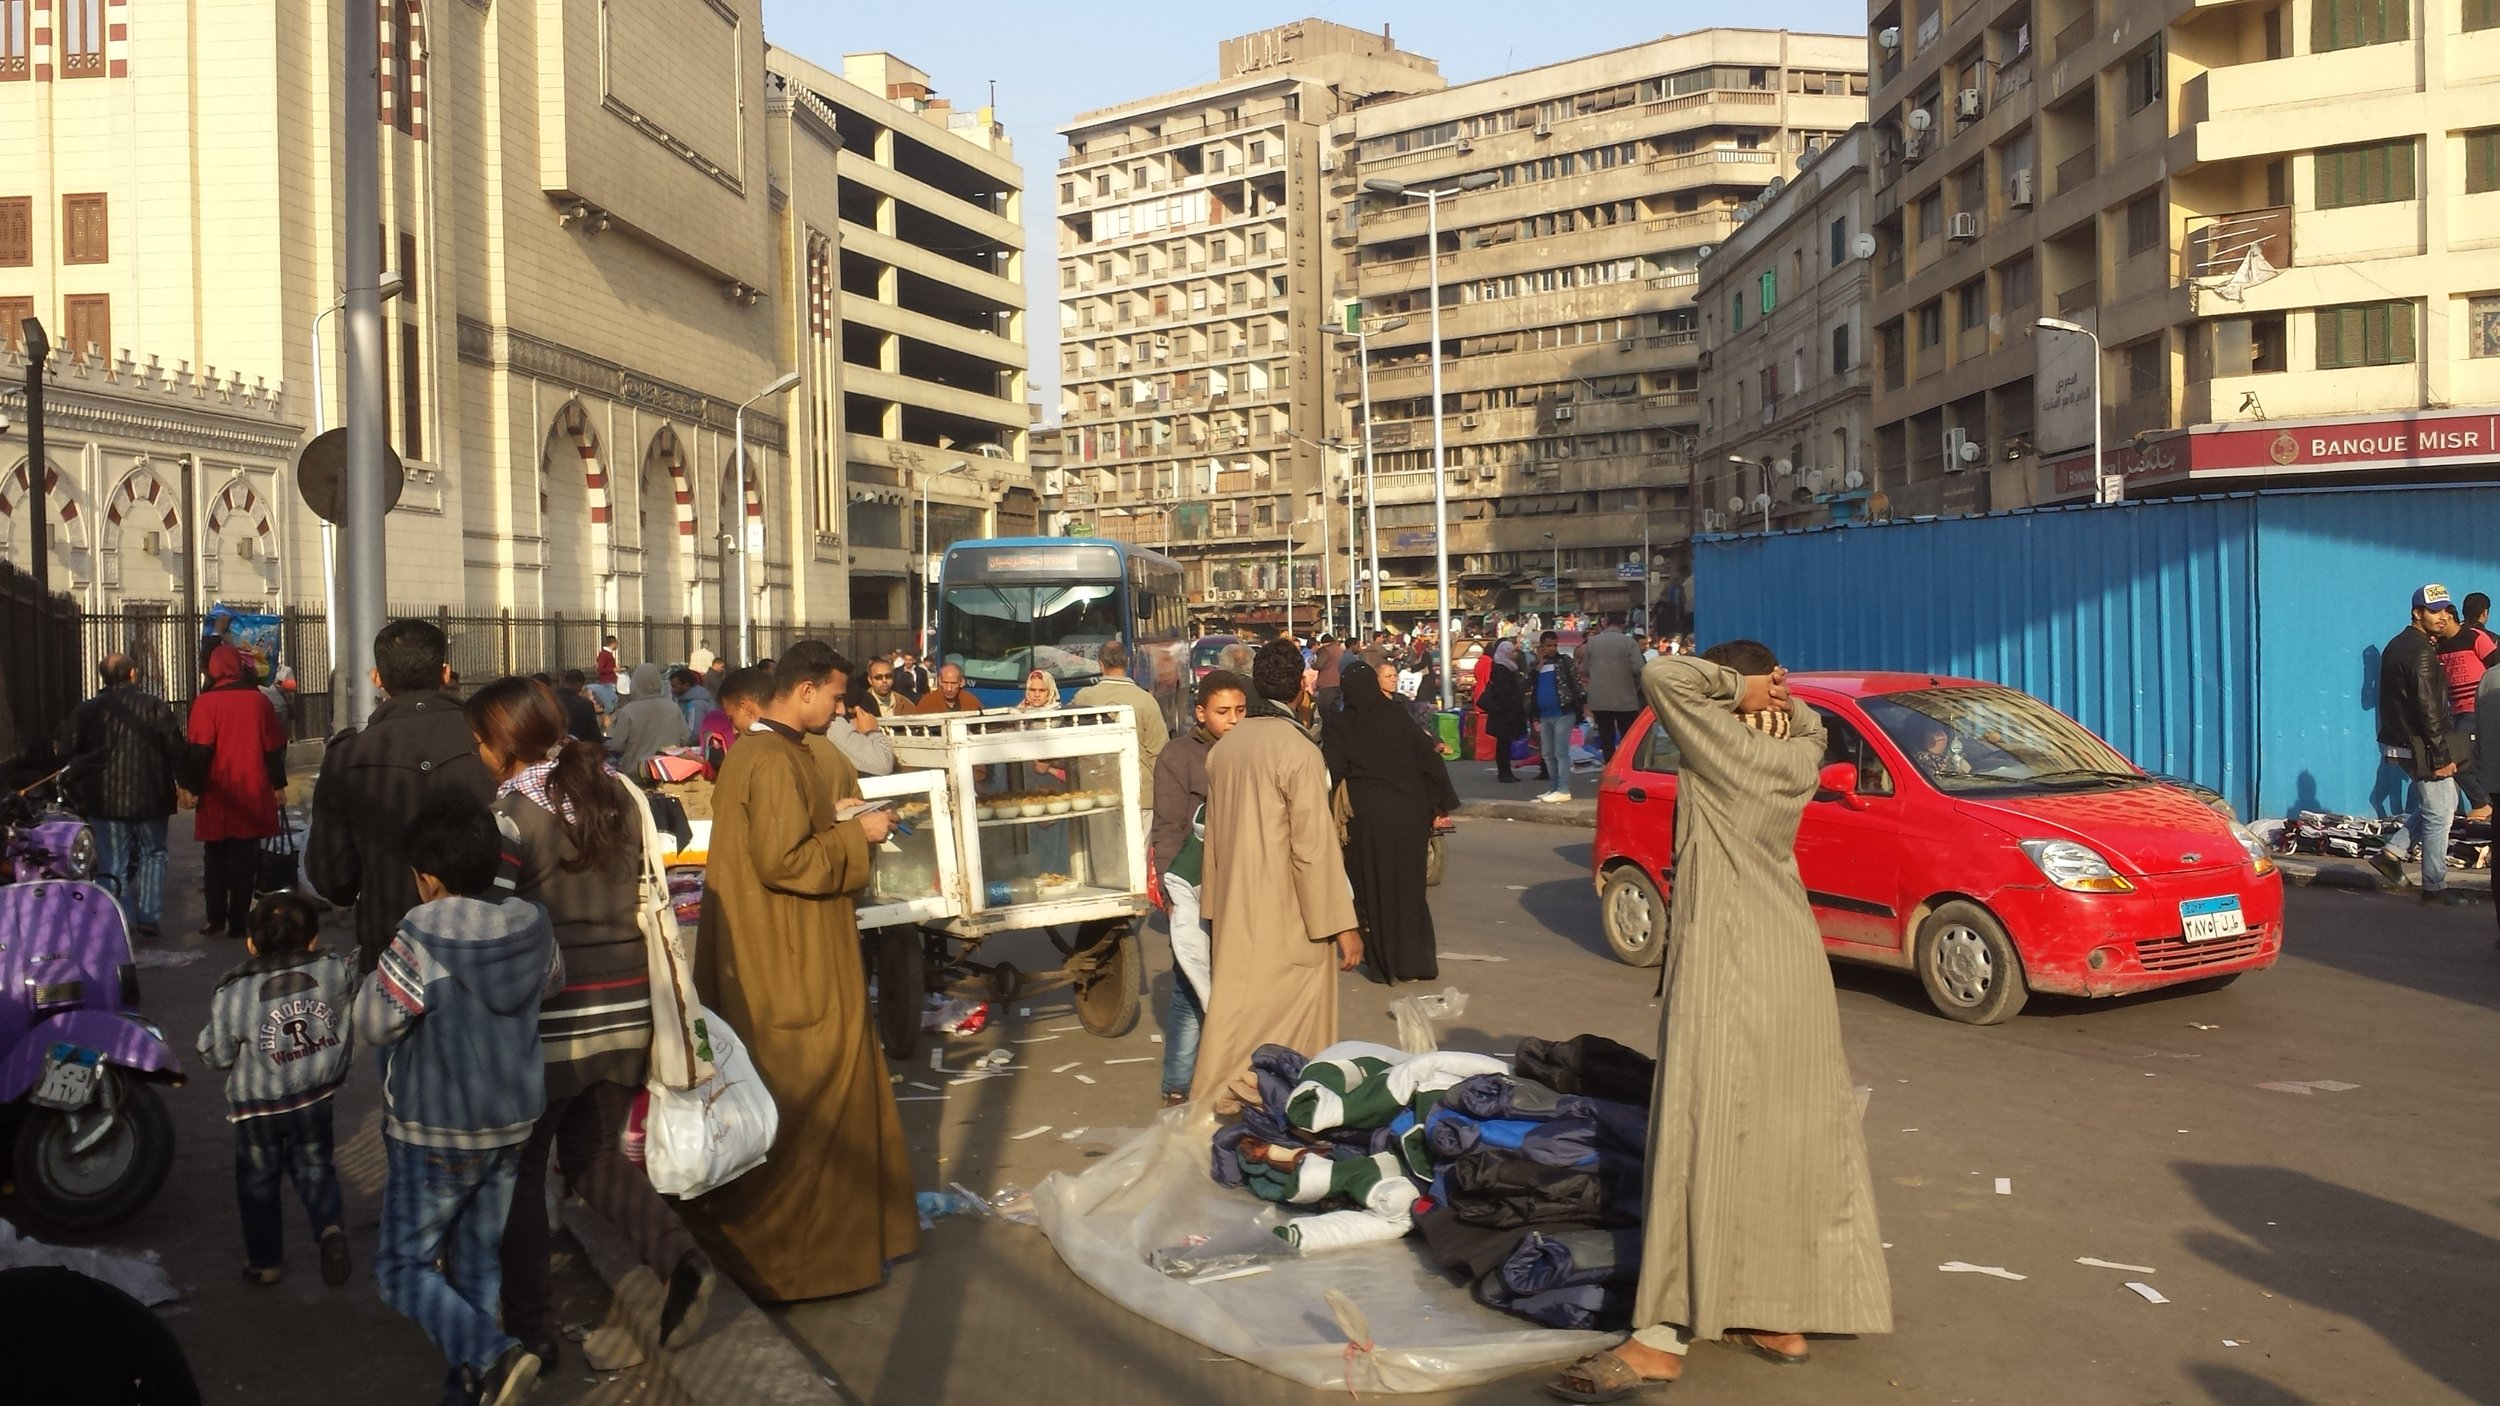 Many of Cairo's streets have vendors hawking wares like this.